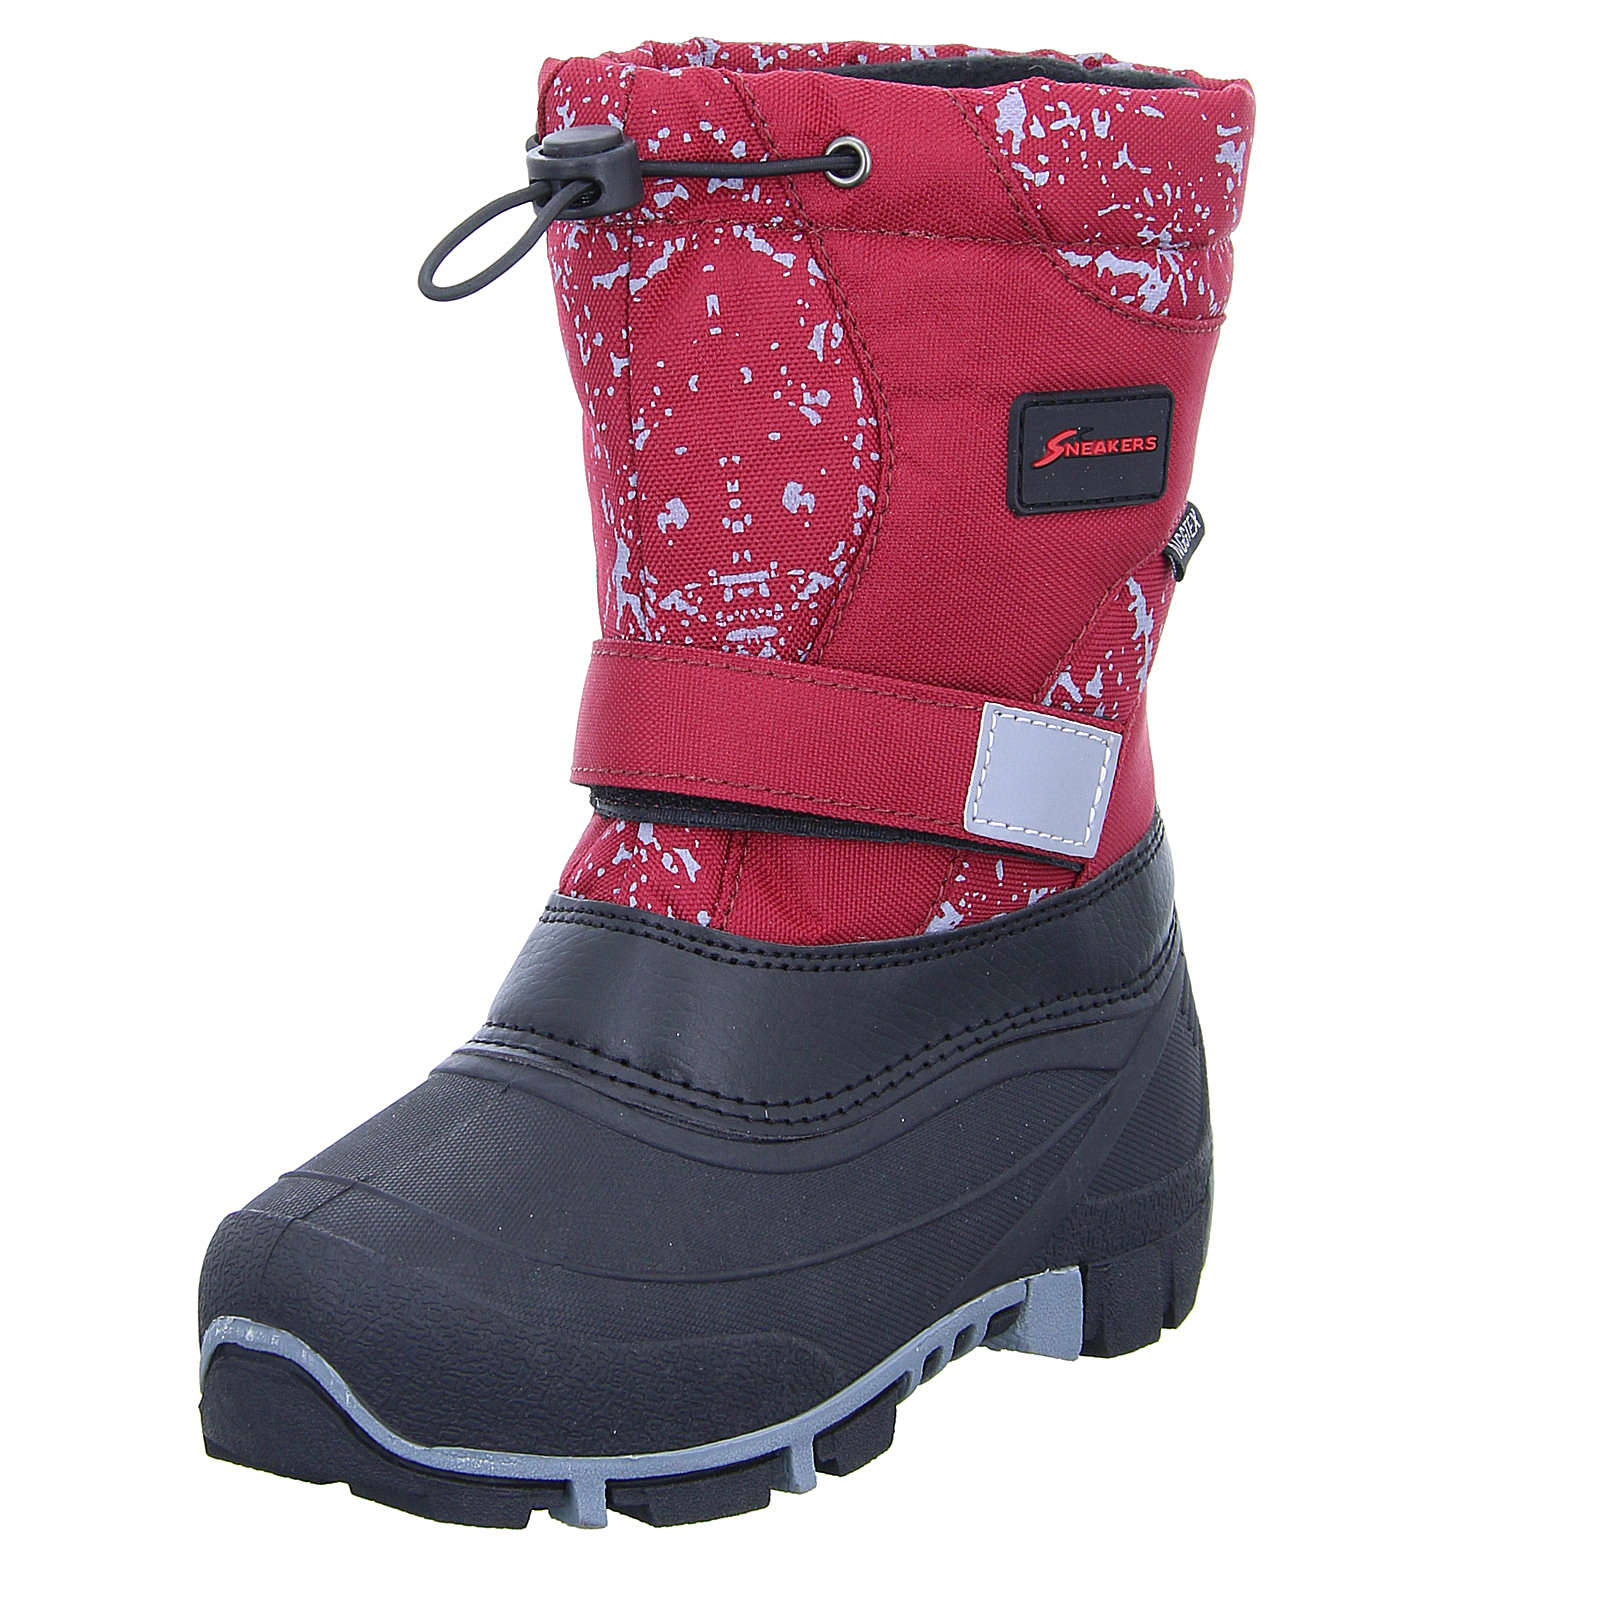 Sneakers Kinder Stiefel rot Gr. 34